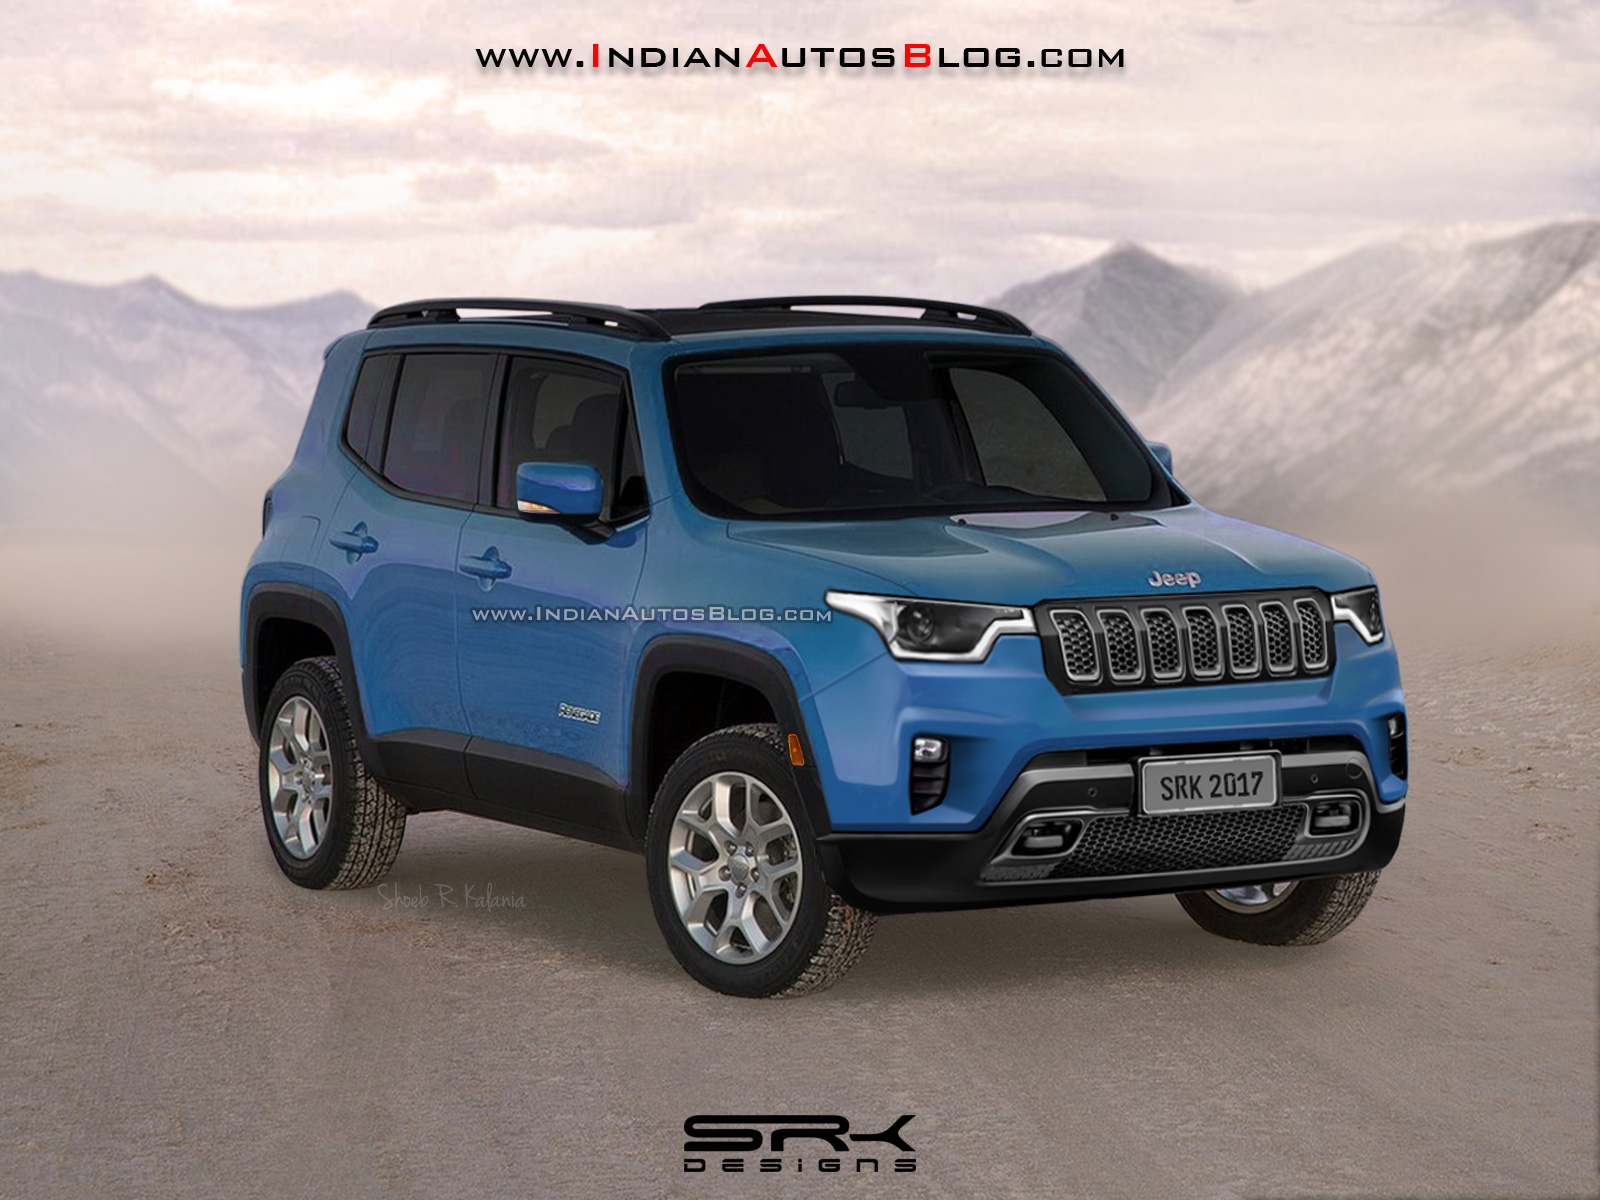 2018-Jeep-Renegade-facelift-front-three-quarters-rendering